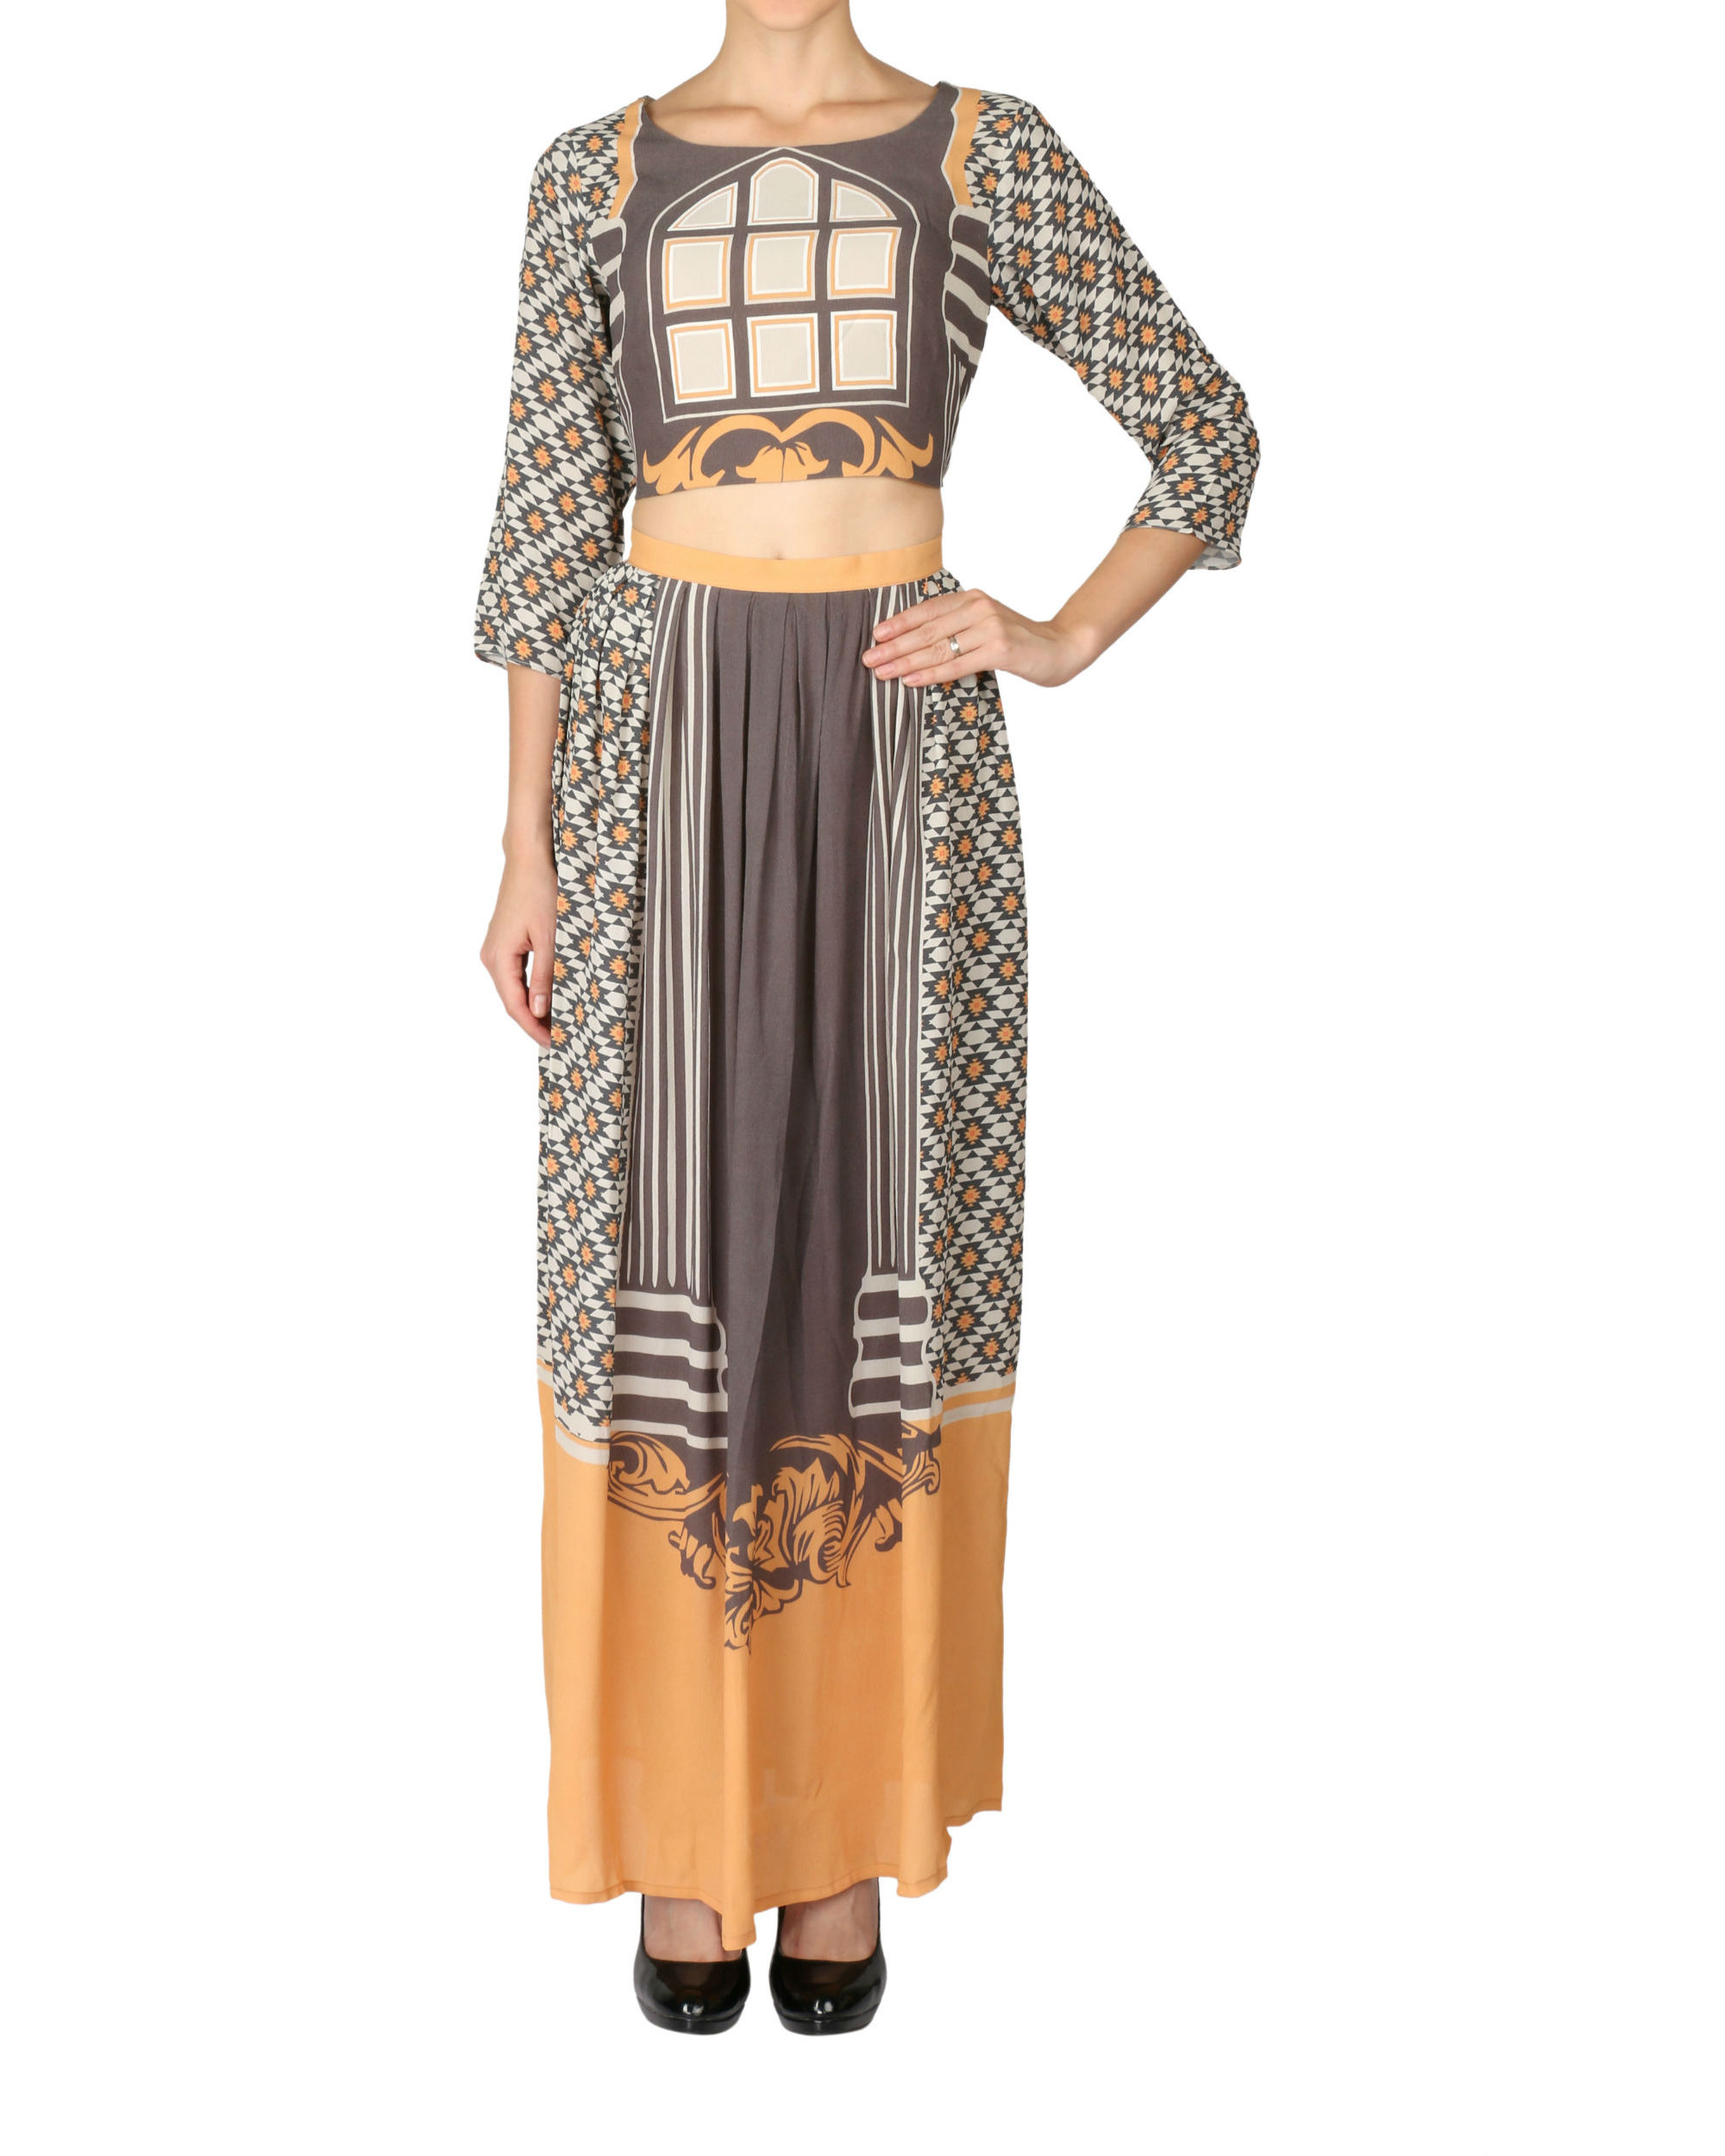 Printed tunic in beige and black